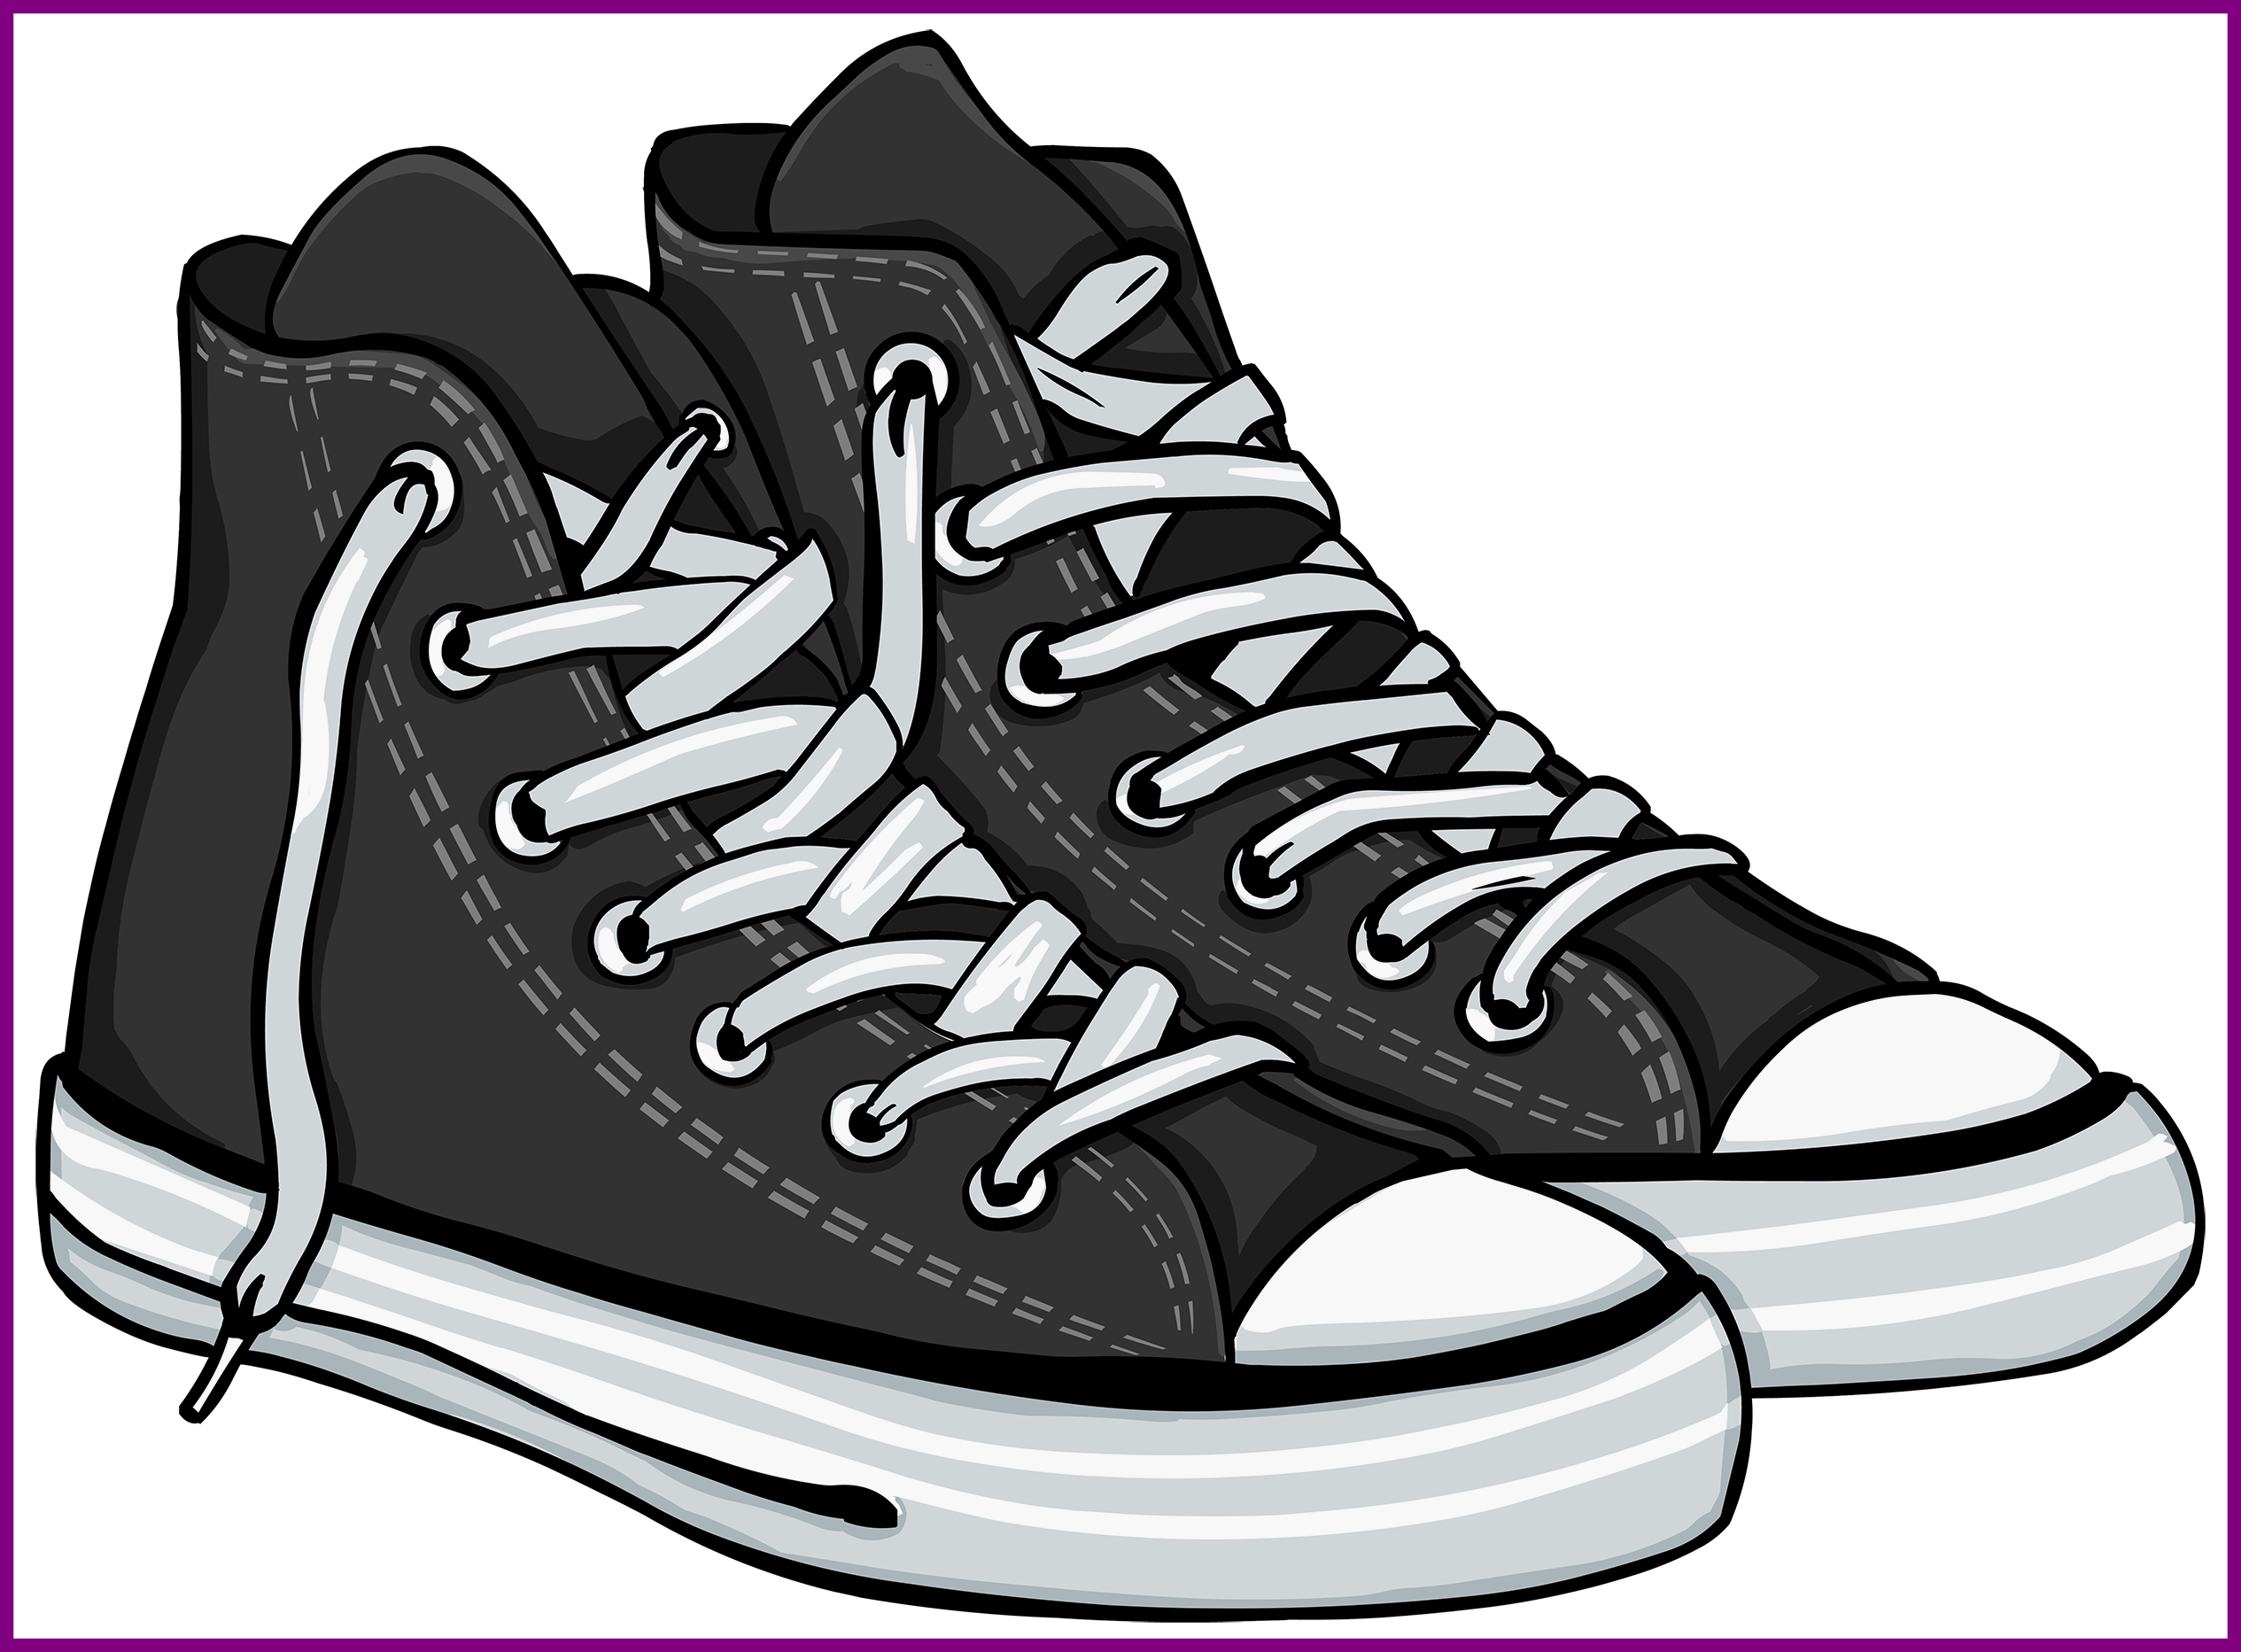 Basketball shoe clipart picture library stock Stunning Clip Art Flip Flop Border Pics For Shoes Clipart Style And ... picture library stock